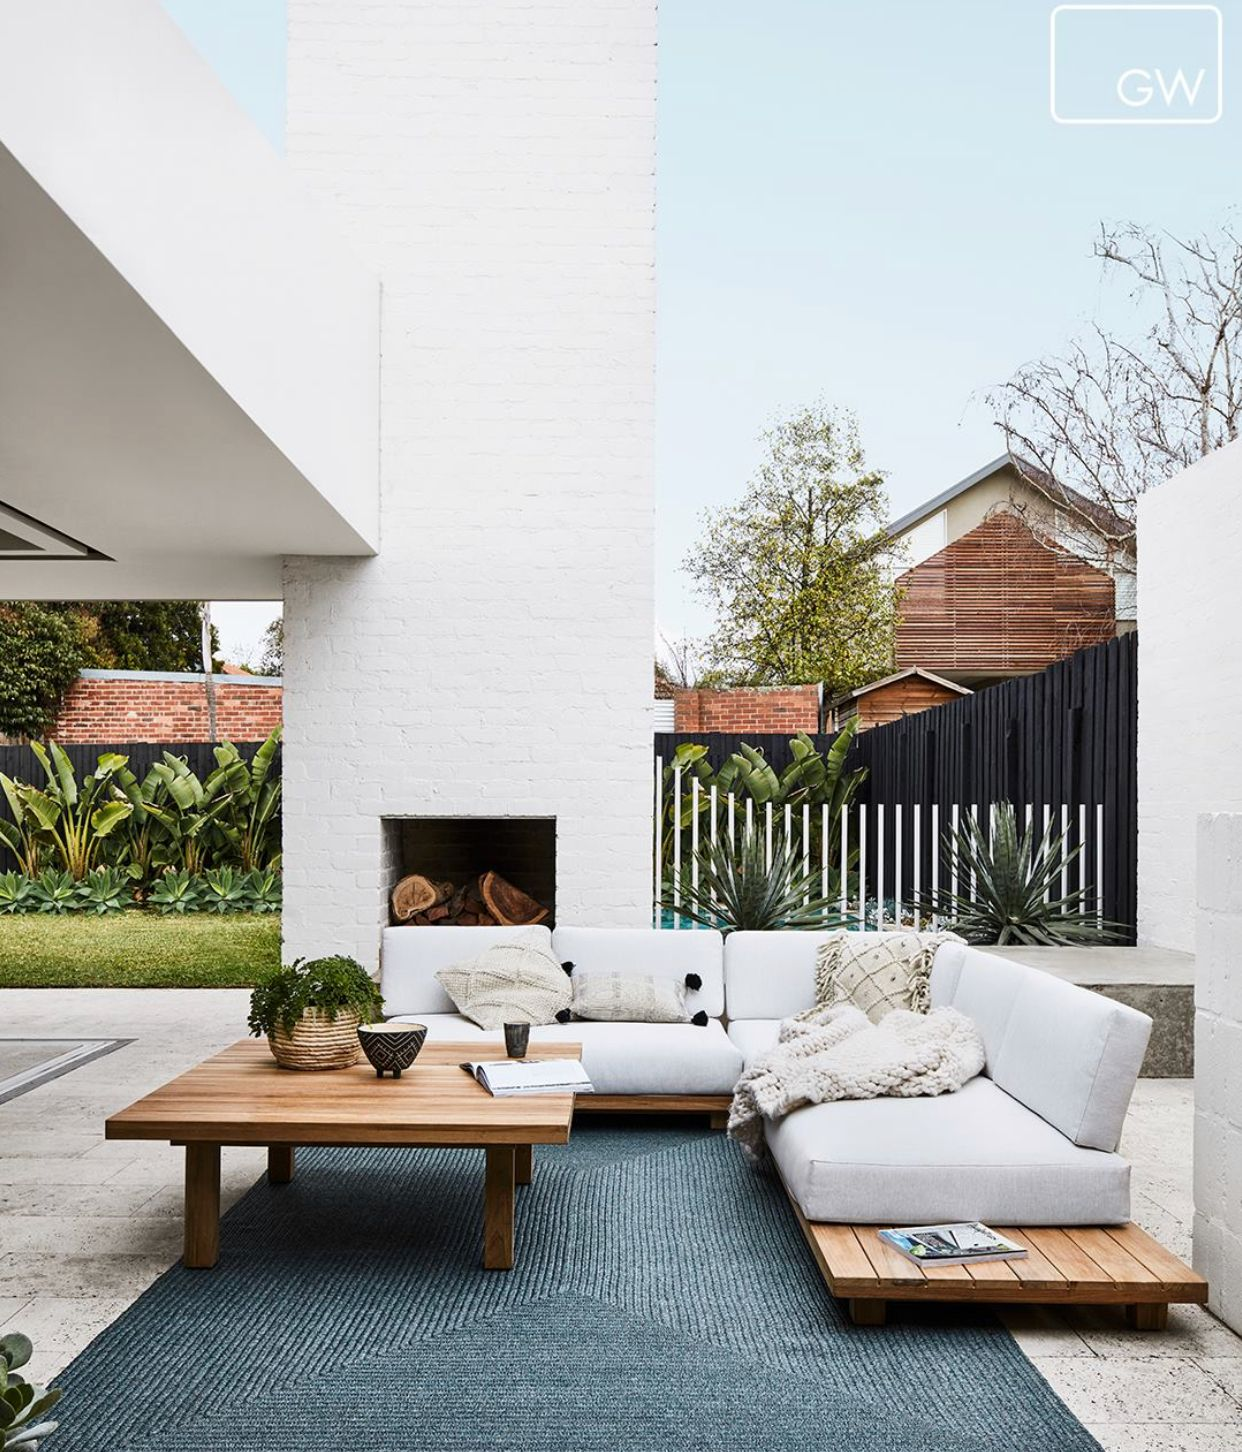 Pin By Martine Hamers On Patios Outdoor Rooms Outdoor Living Space Outdoor Living